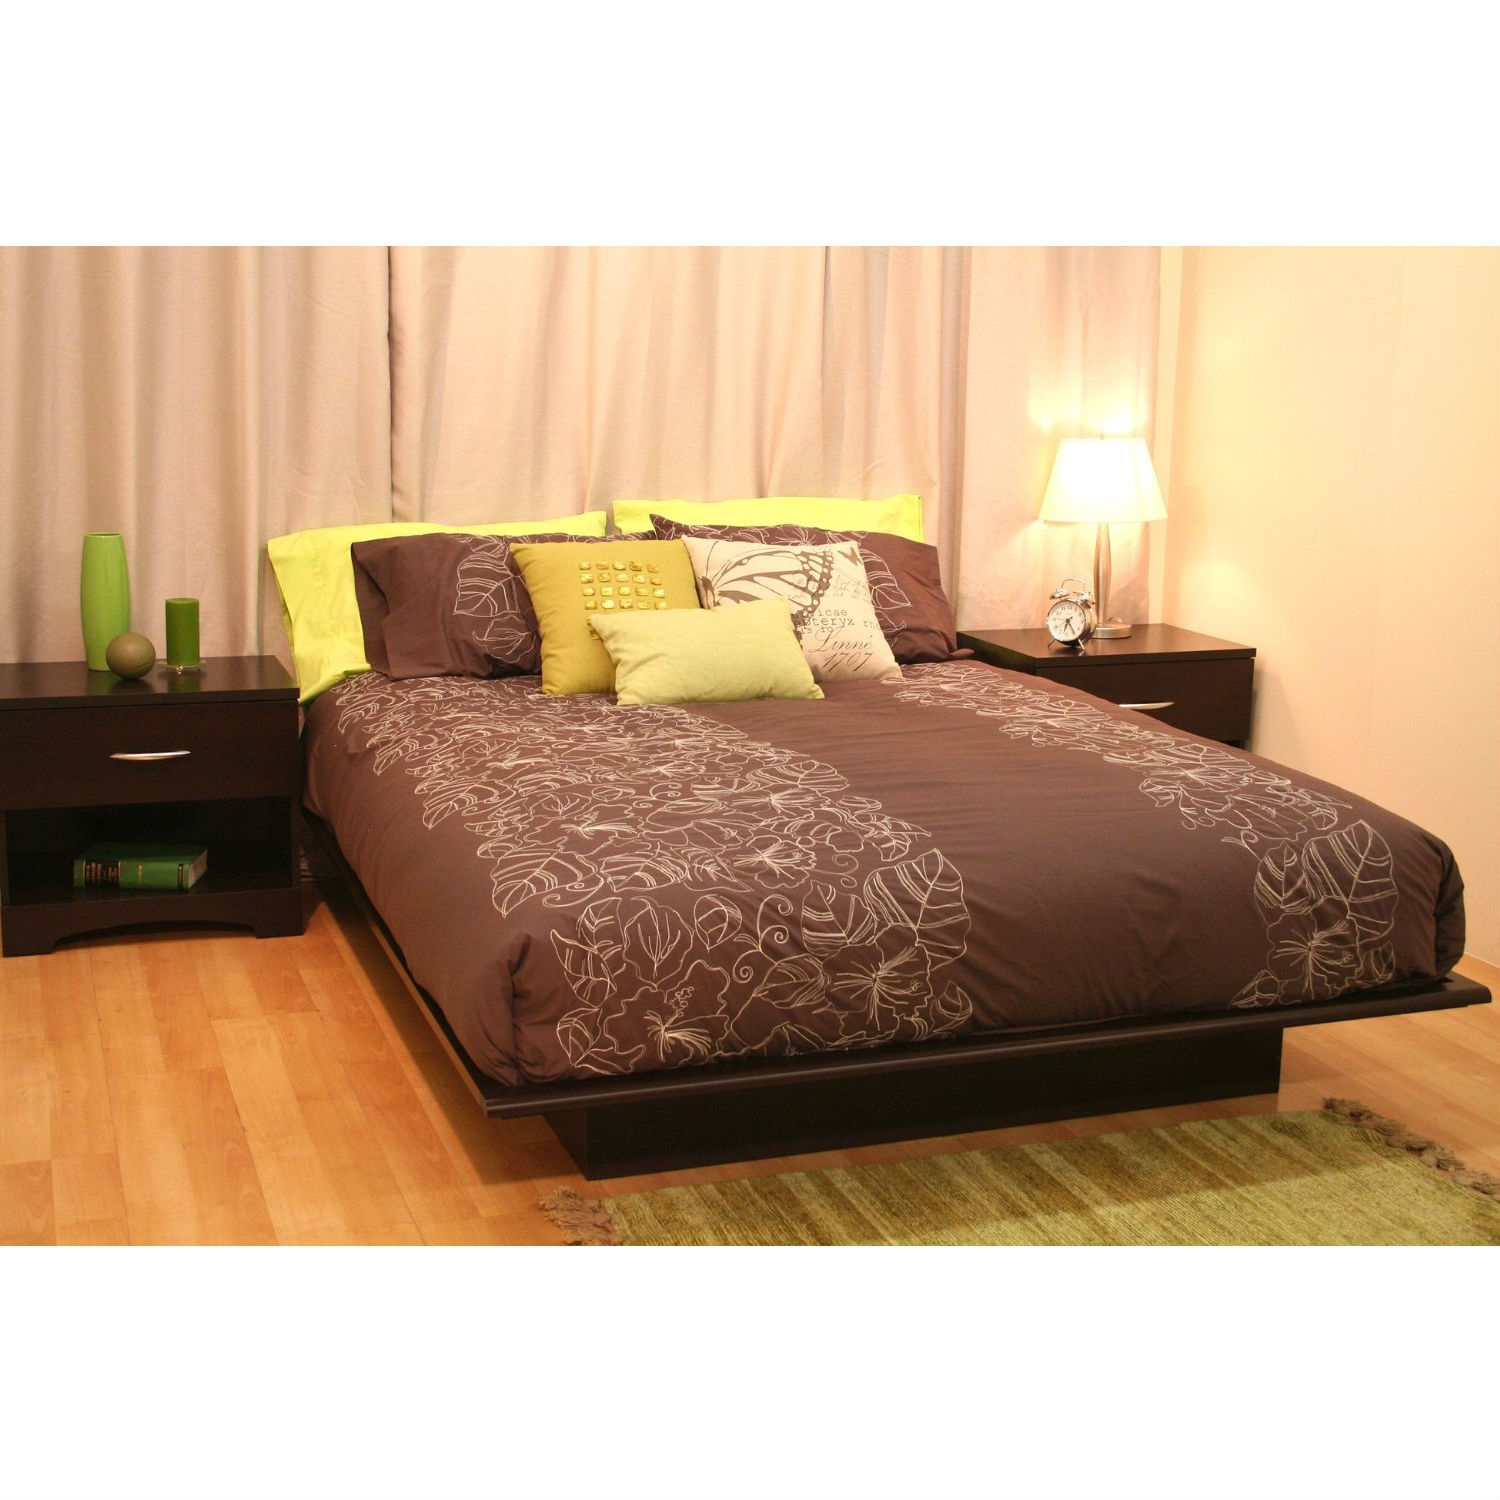 Picture of: Queen Size Platform Bed Frame In Dark Brown Chocolate Wood Finish Fastfurnishings Com